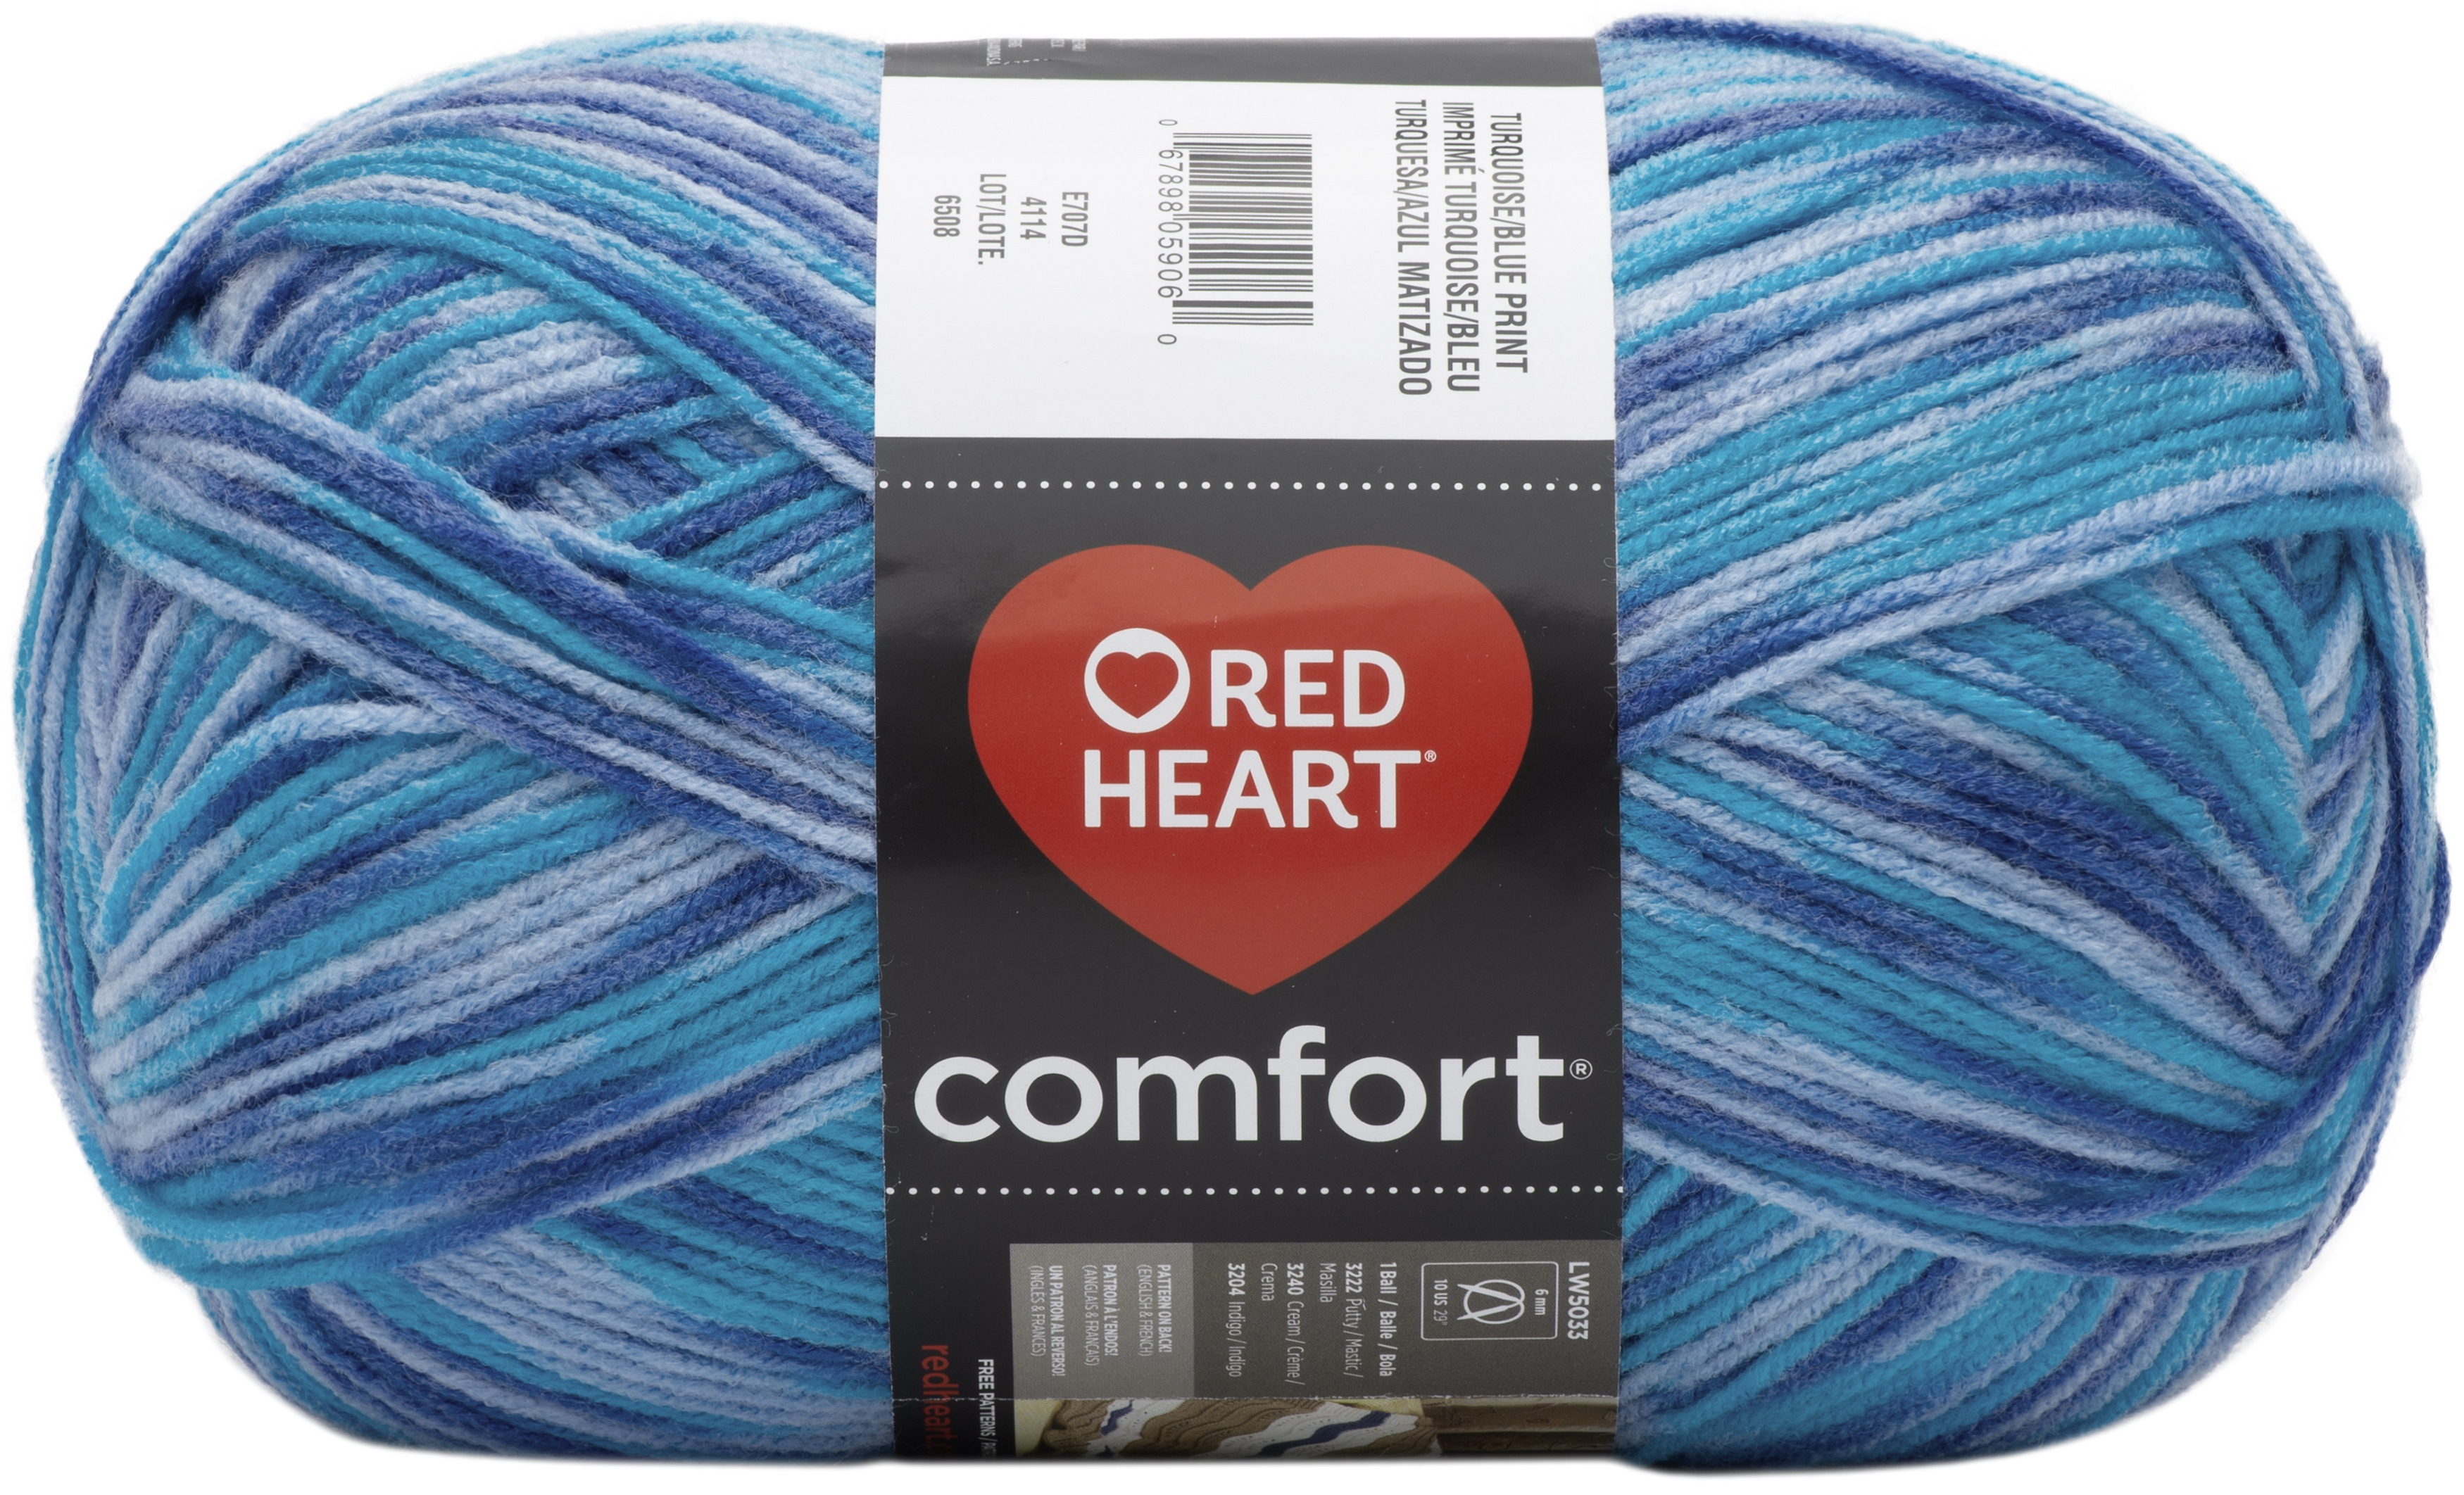 Red Heart Comfort Yarn-Turquoise & Blue Print